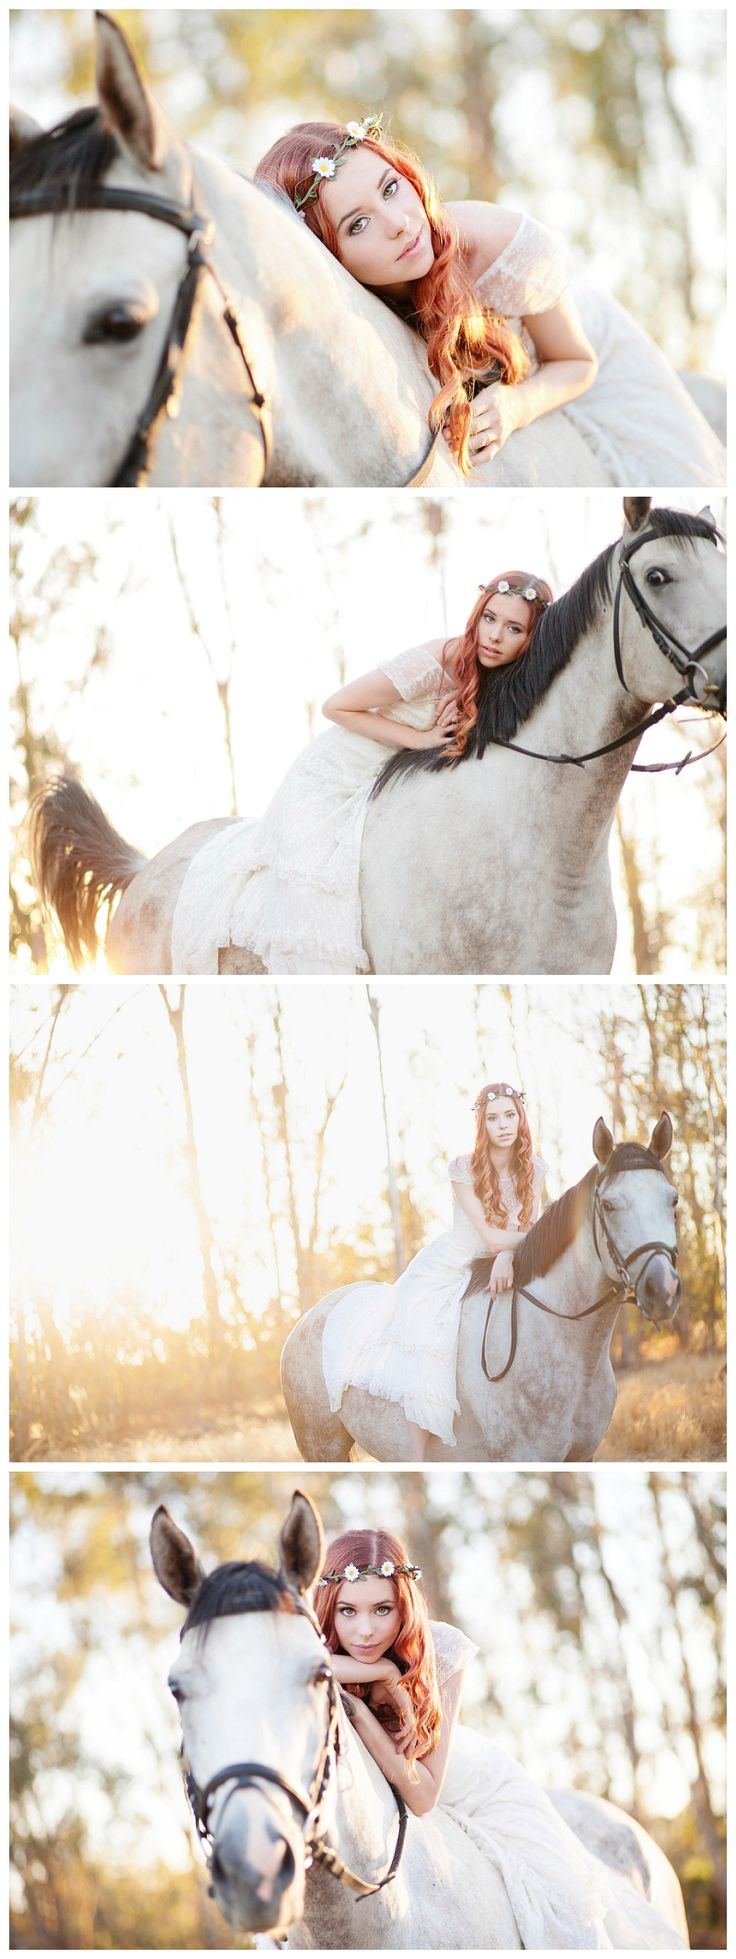 Bree and Her Horse {Bridal Inspired} - Erica Houck Photography